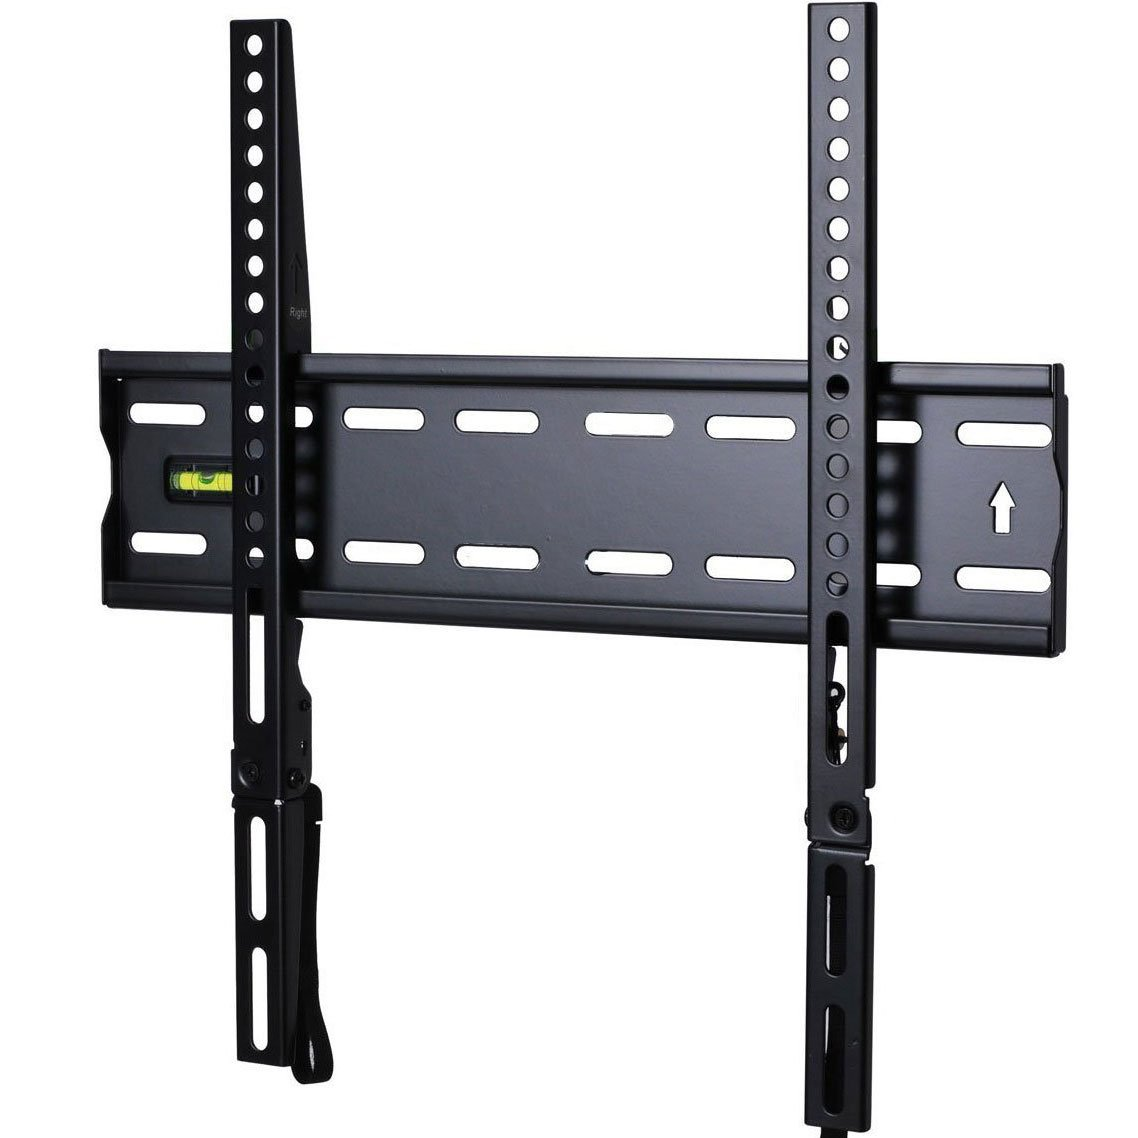 VideoSecu Ultra Slim TV Wall Mount for most 27''-47'' LCD LED Plasma TV, Some up to 55'' Flat Panel Screen Display with VESA 100x100 200x100 200x200 300x200 400x300 400x400 1'' Low Profile TV Bracket 1RX